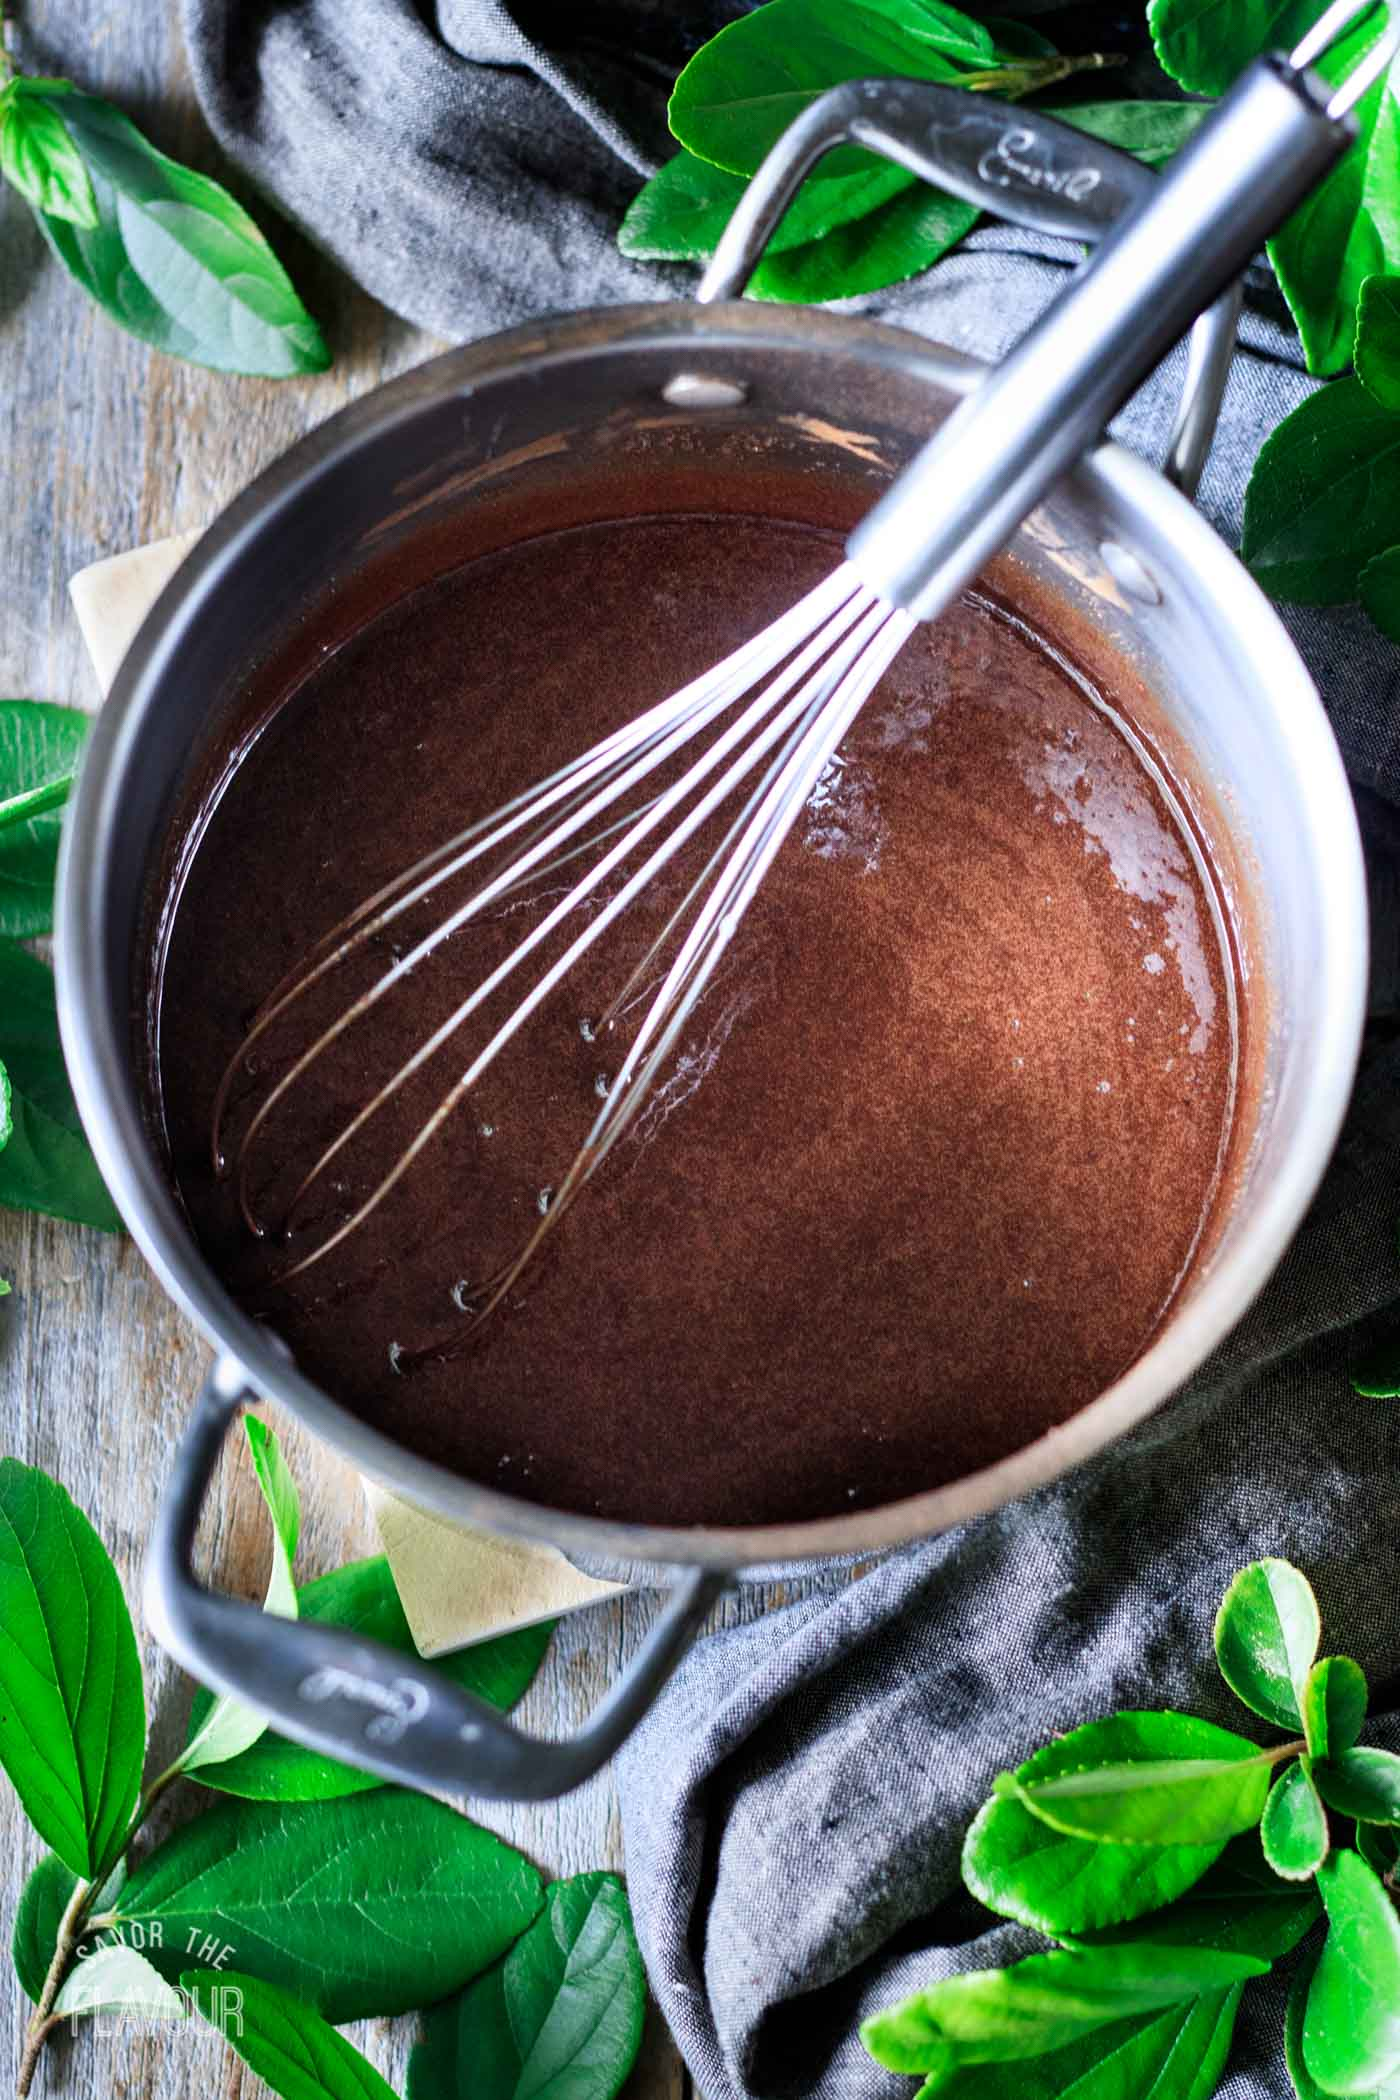 whisking the fudge mixture in a saucepan